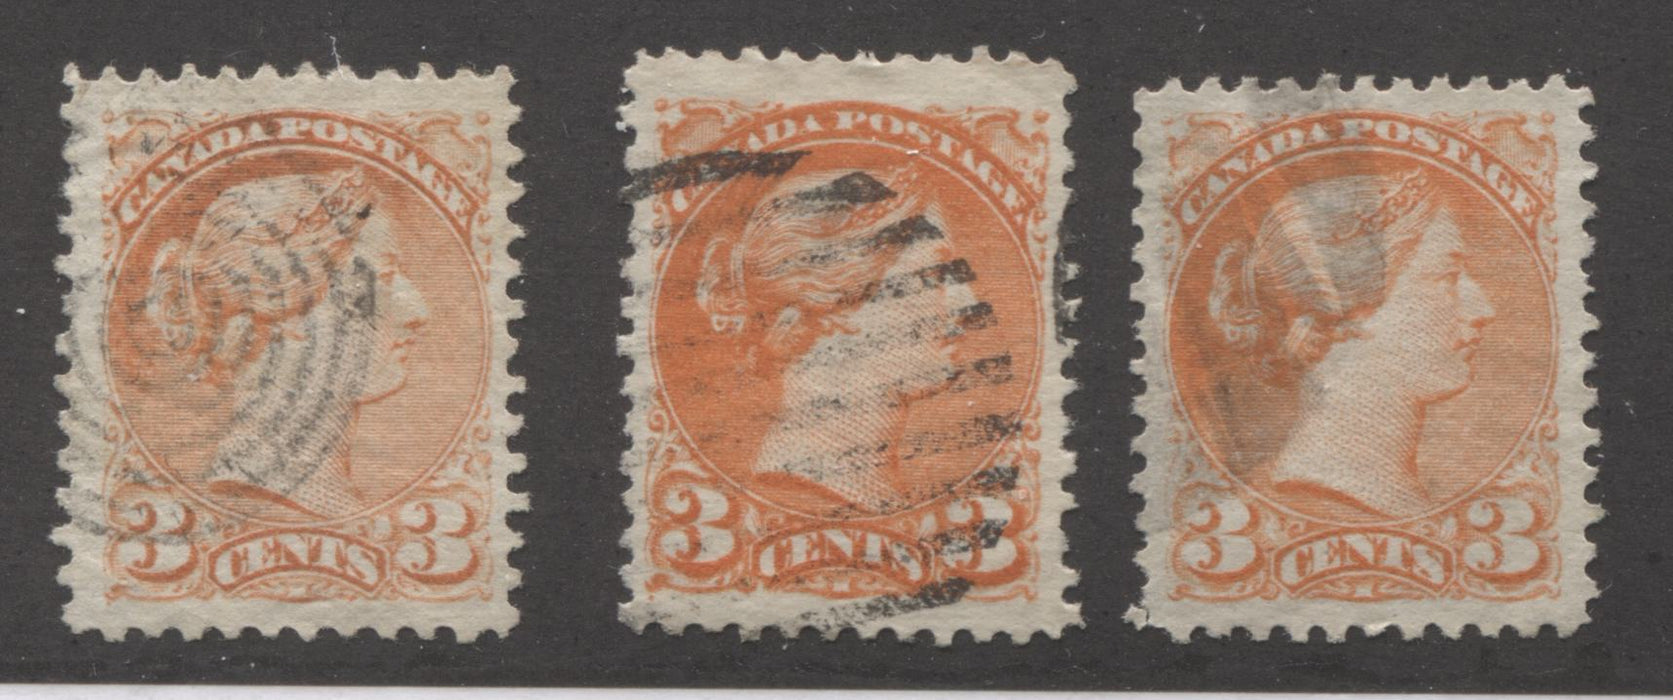 Canada #37 3c Orange Red Queen Victoria, 1870-1897 Small Queen Issue, Three Very Fine Used Examples of the Mid Montreal Printing, Each a Slightly Different Shade Brixton Chrome